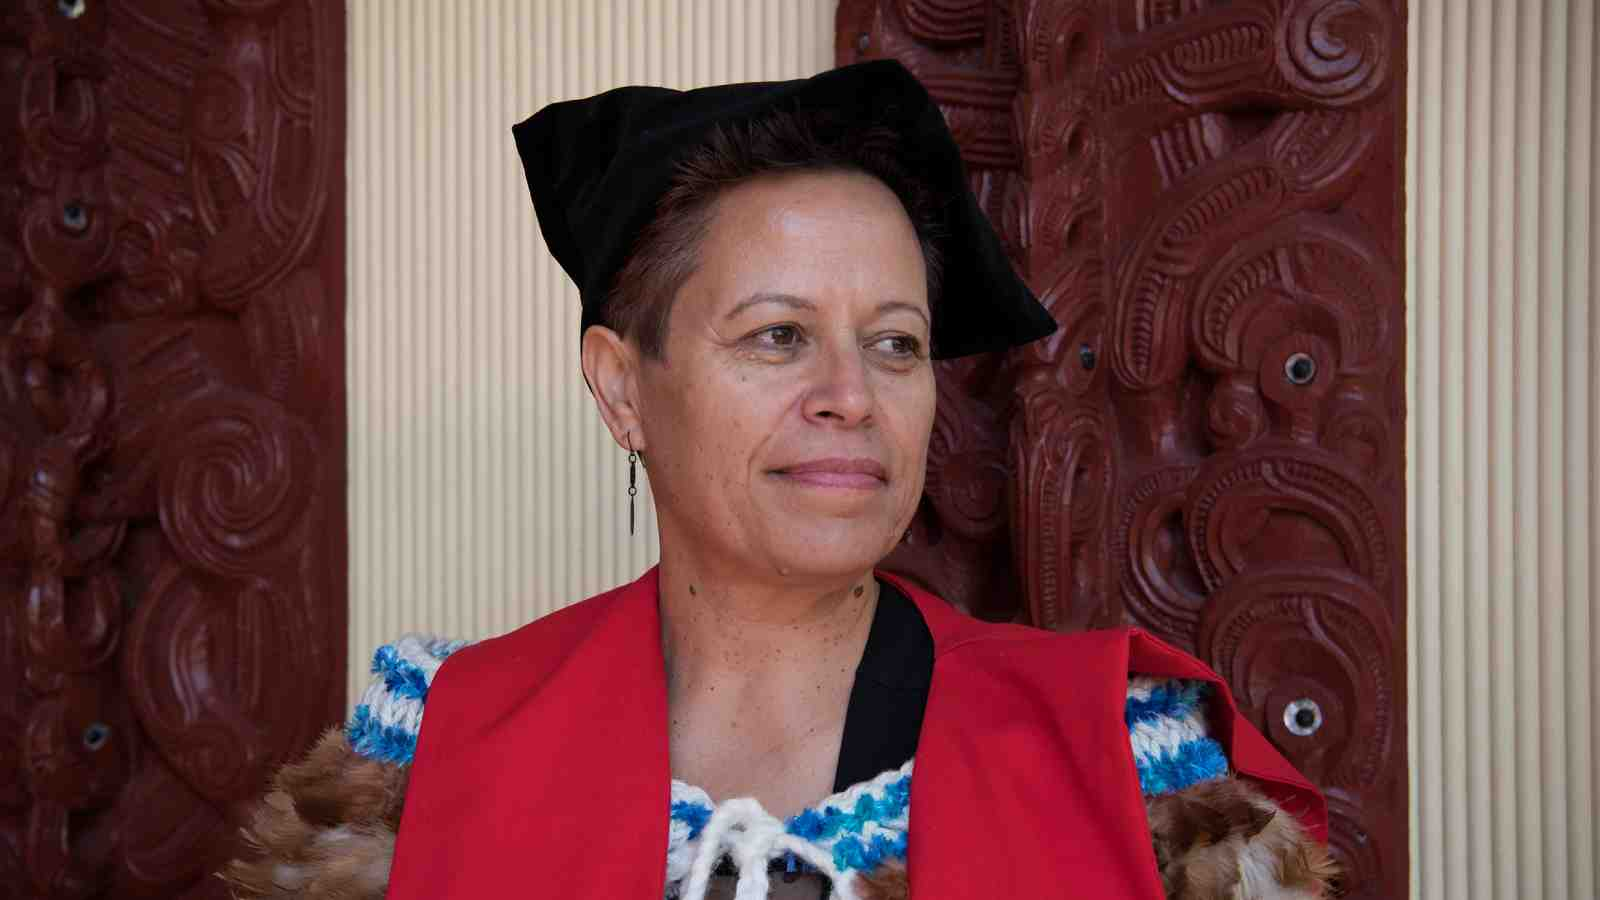 Maureen Muller in her graduation gown and cap.